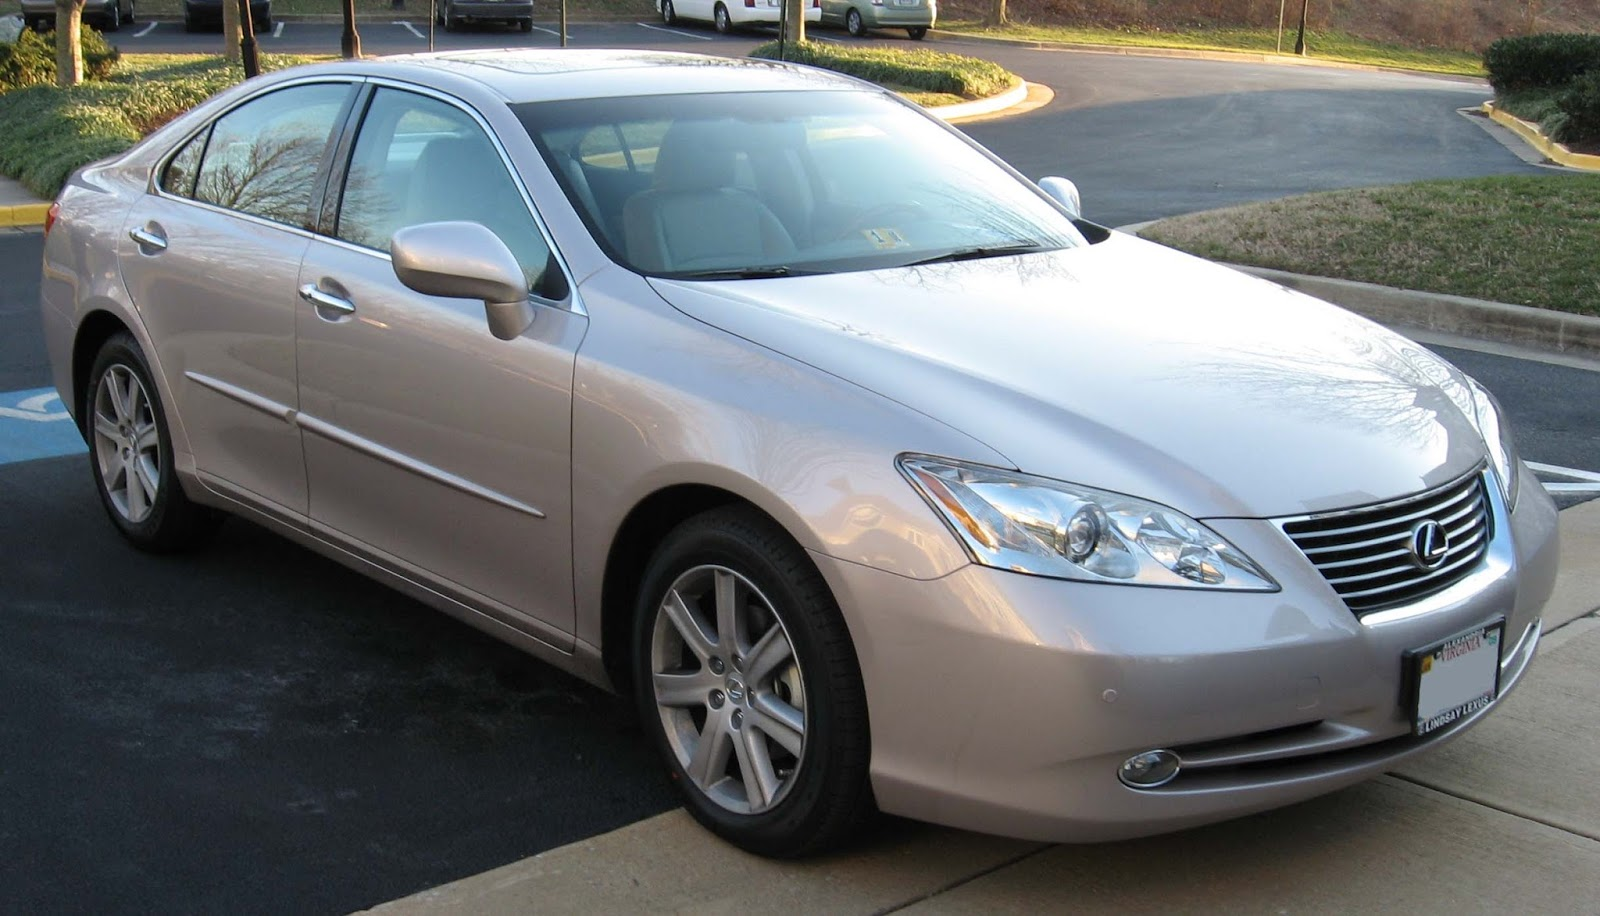 Lexus X Used Cars For Sale